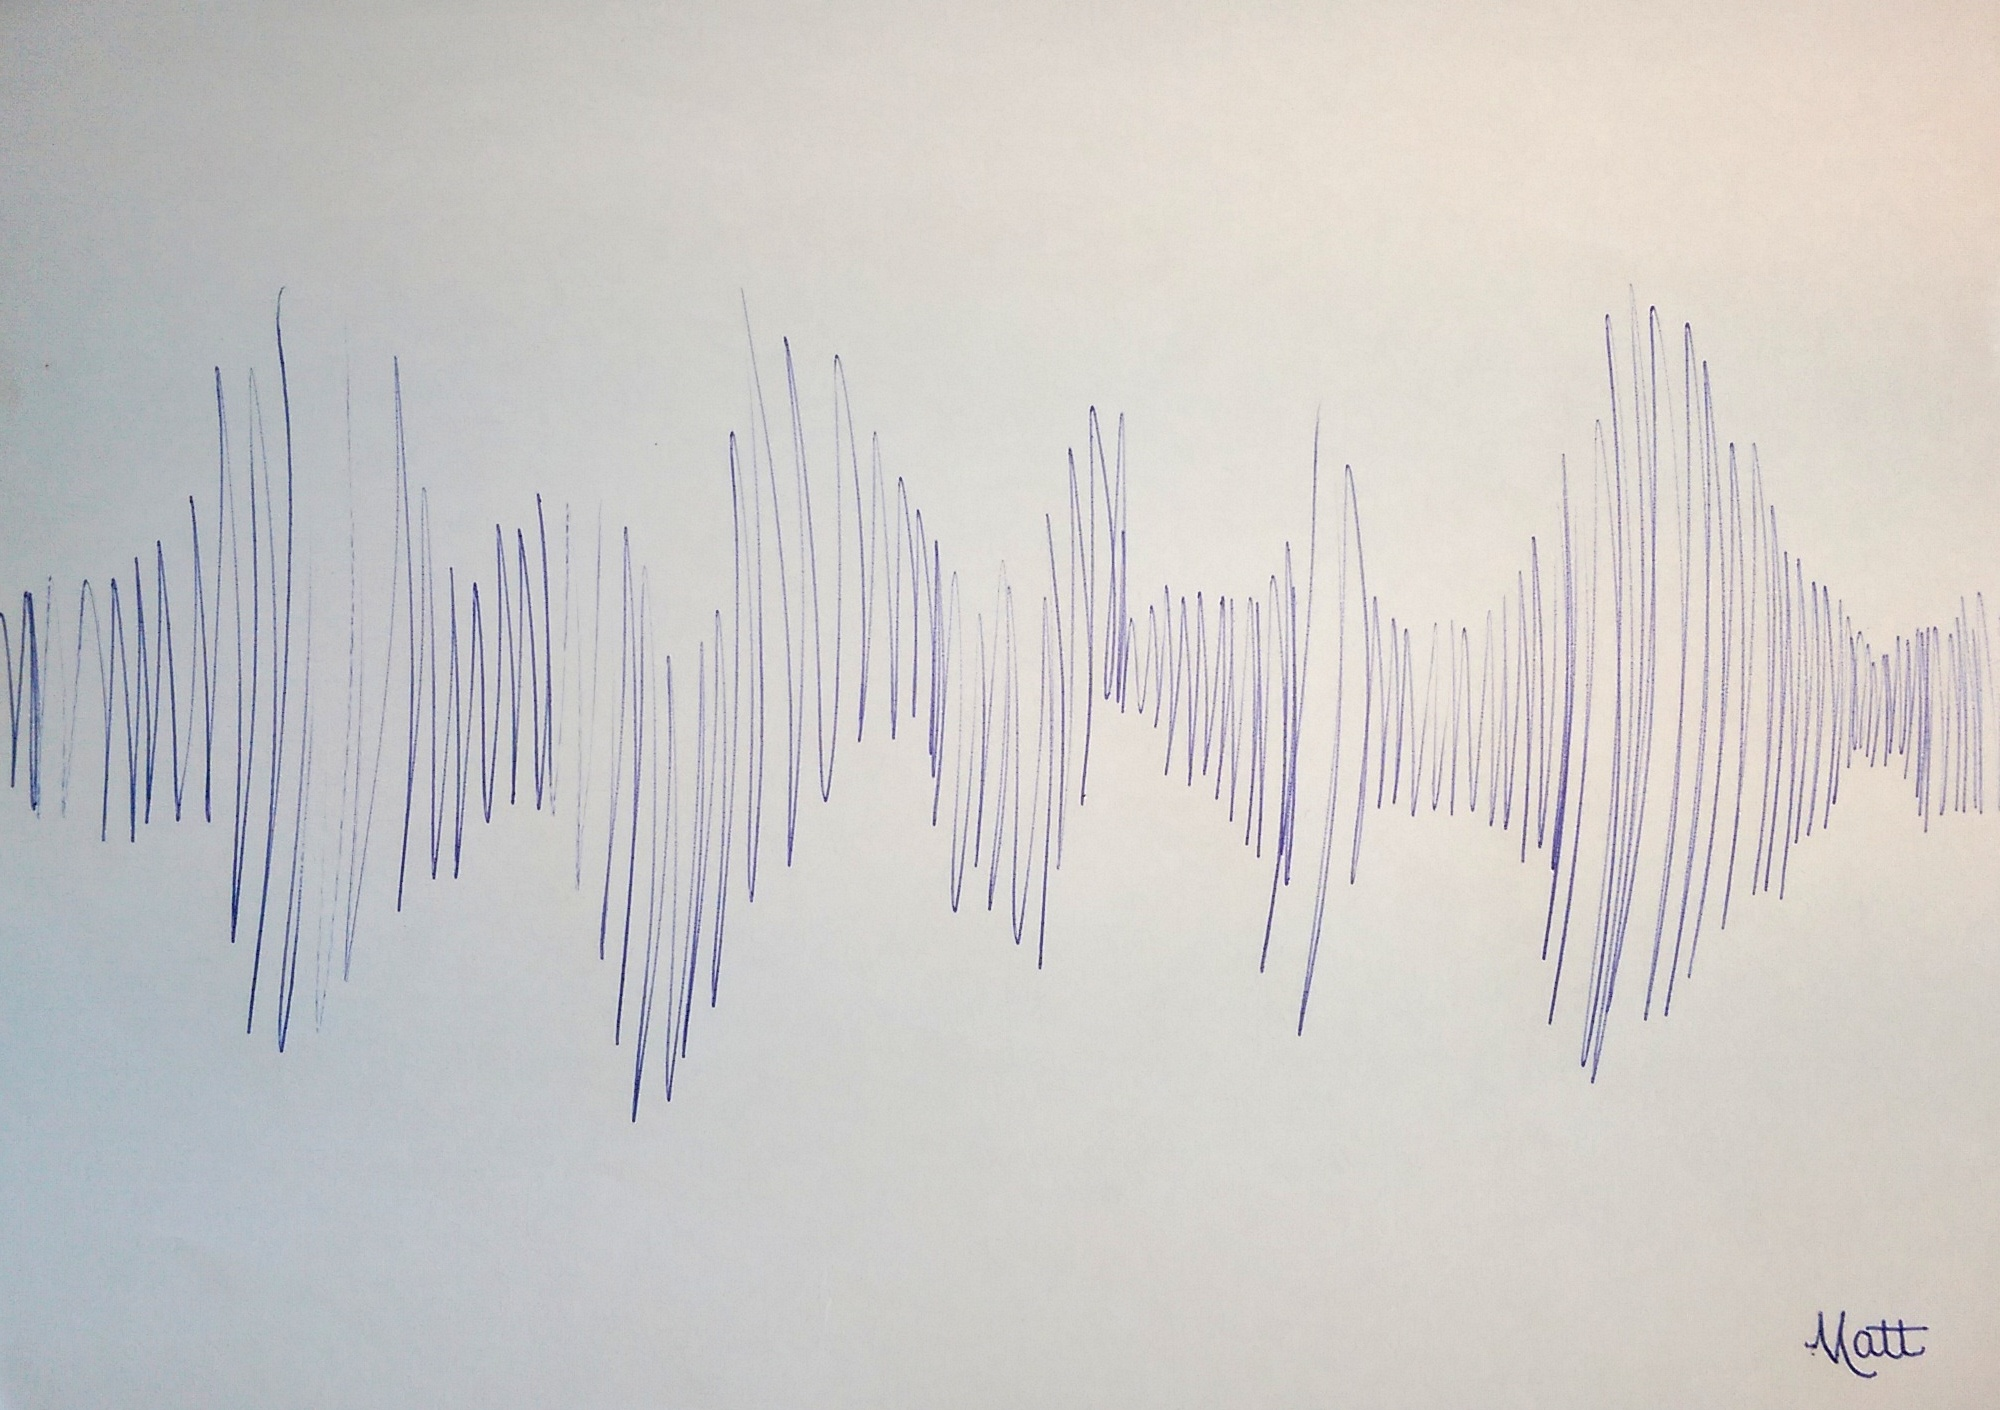 2000x1410 Research Paper Sound Waves